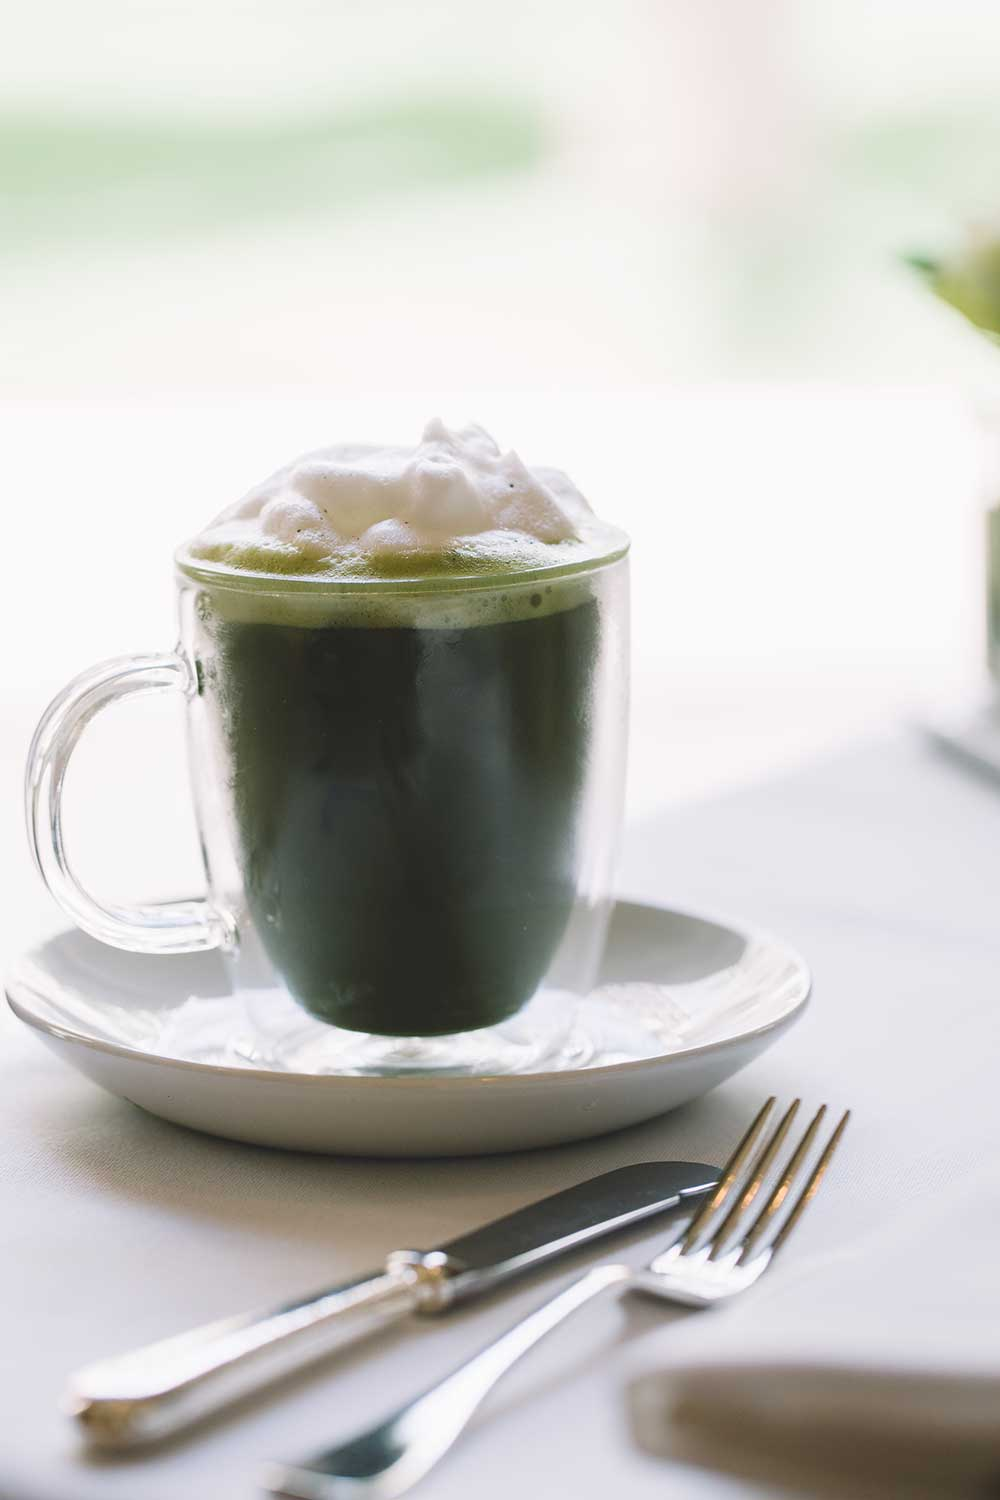 cup of Japanese tea with fresh whipped cream on table